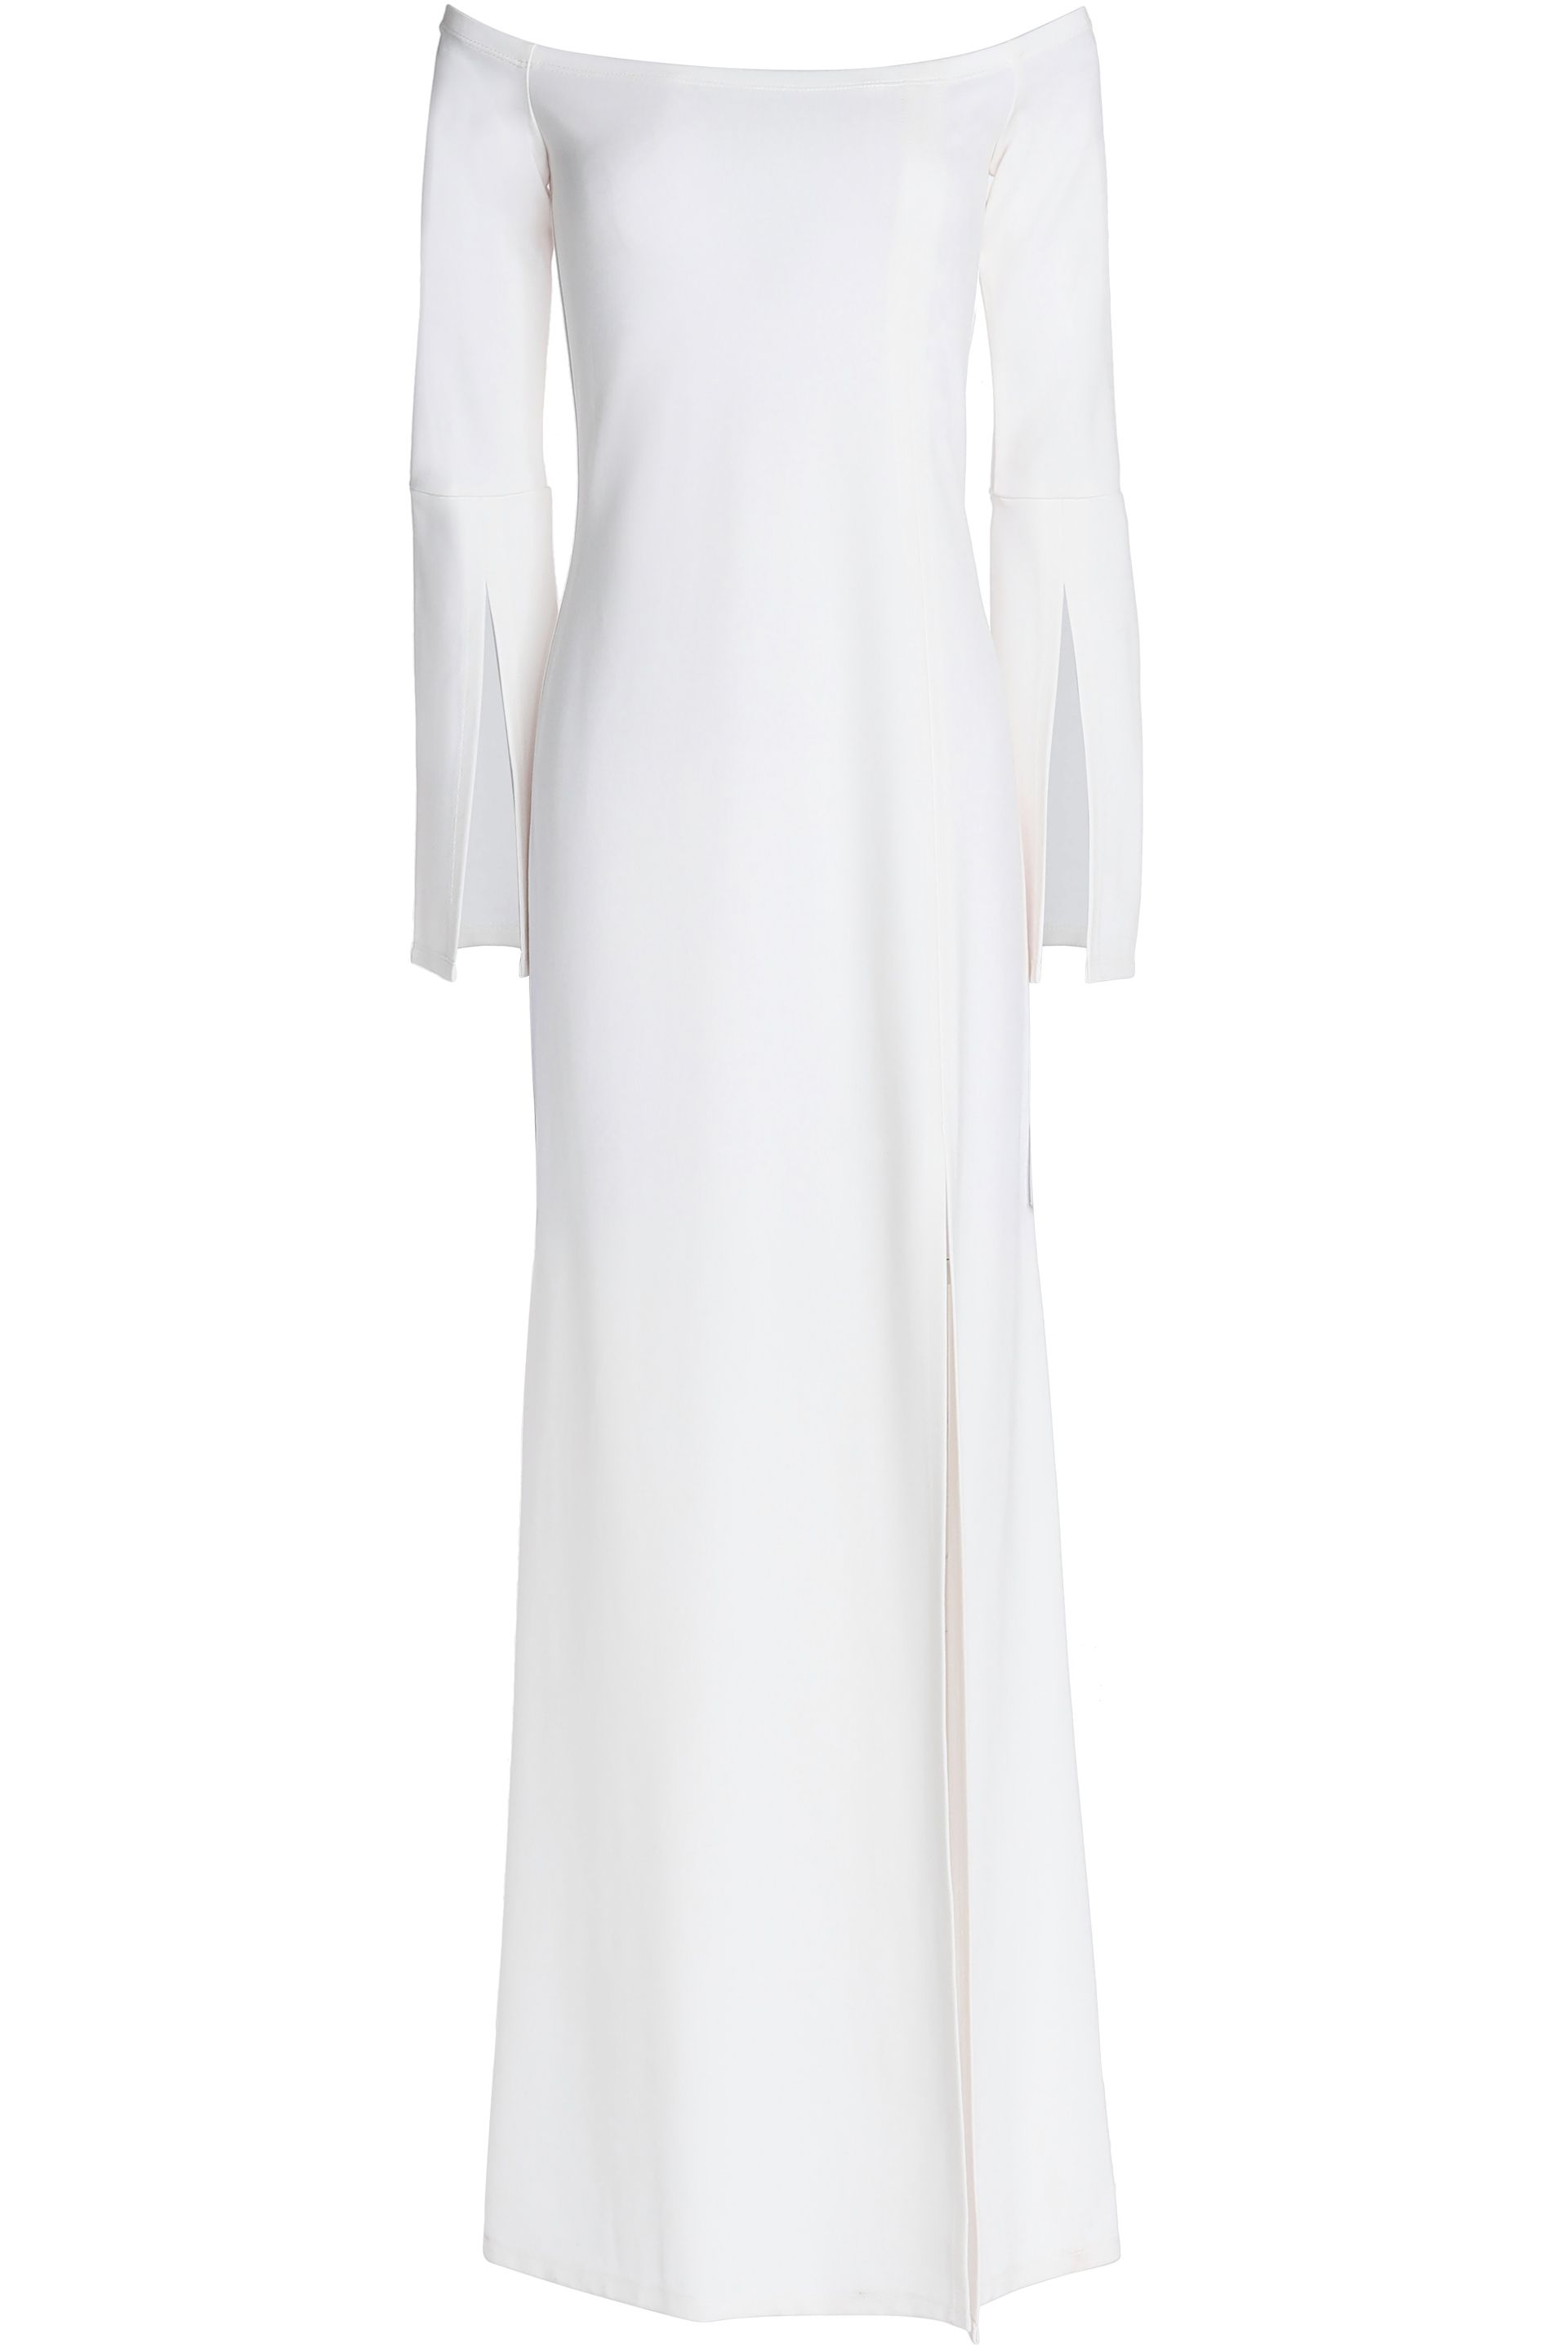 Meghan Markle Wedding Dress Copy